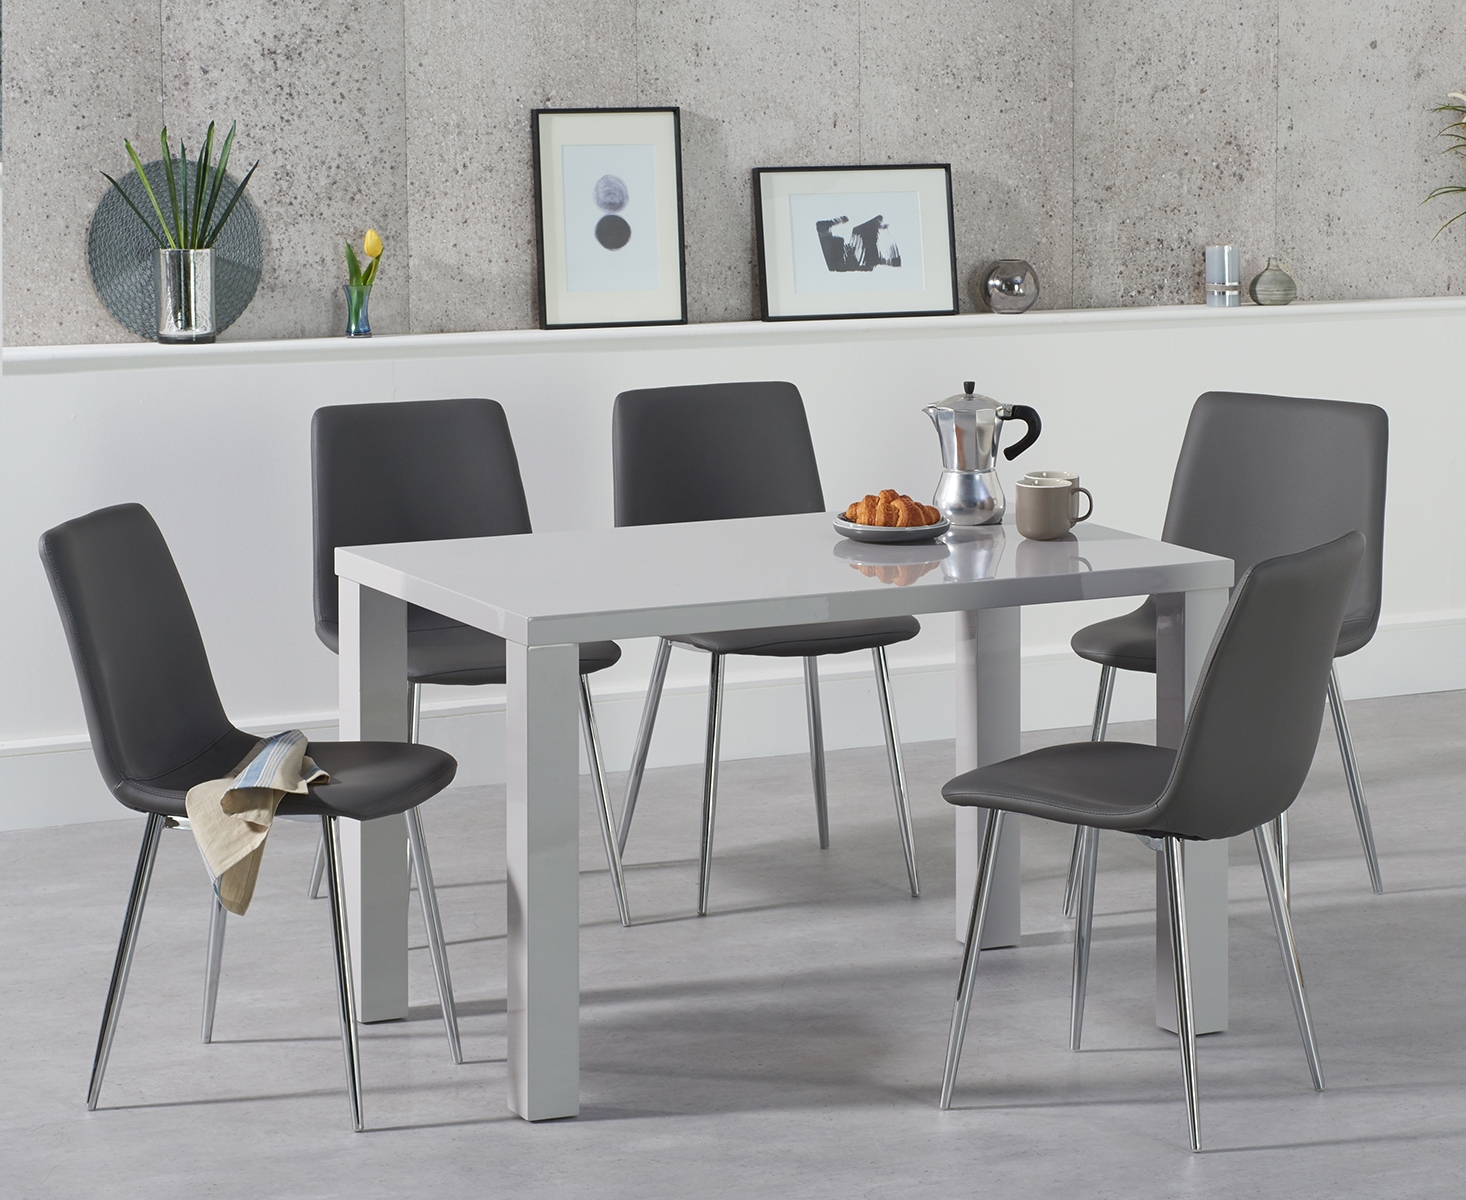 An image of Atlanta 120cm Light Grey High Gloss Dining Table with Helsinki Faux Leather Chai...